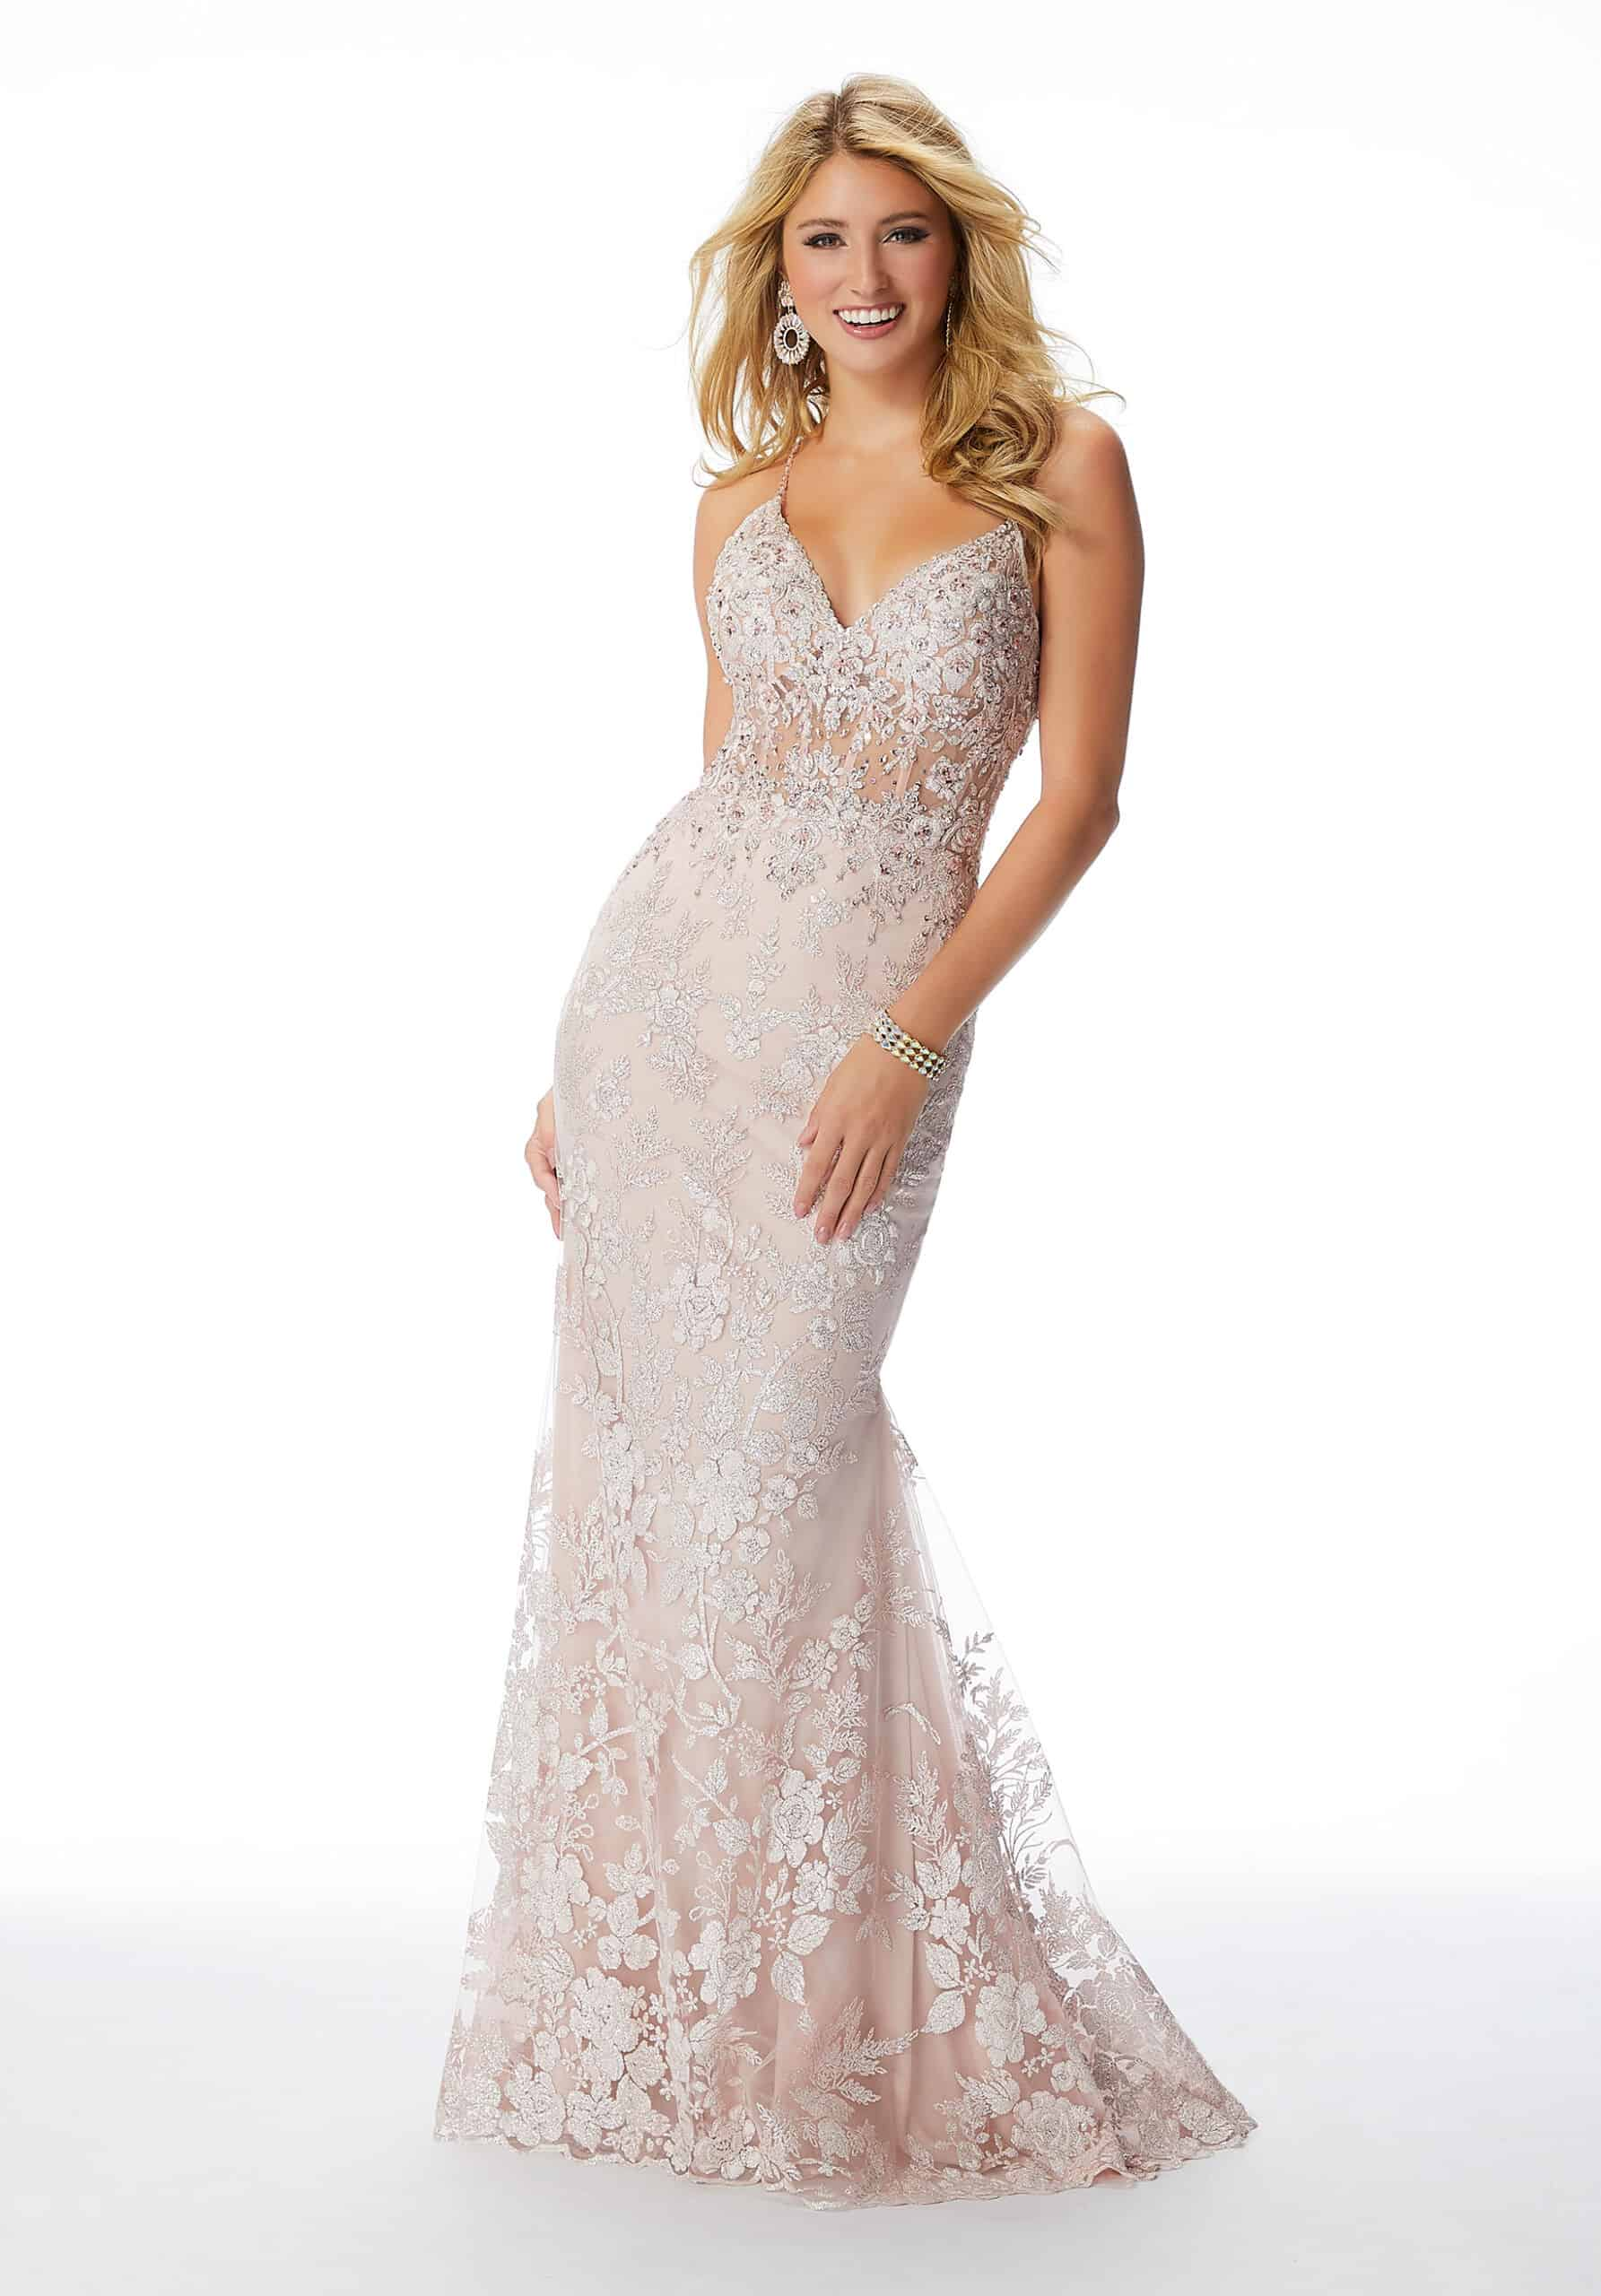 Fitted Prom Gown Featuring A Crystal Beaded Bodice With Exposed Boning, Beaded Crisscross Straps, And Allover Glitter Floral Embroidery.